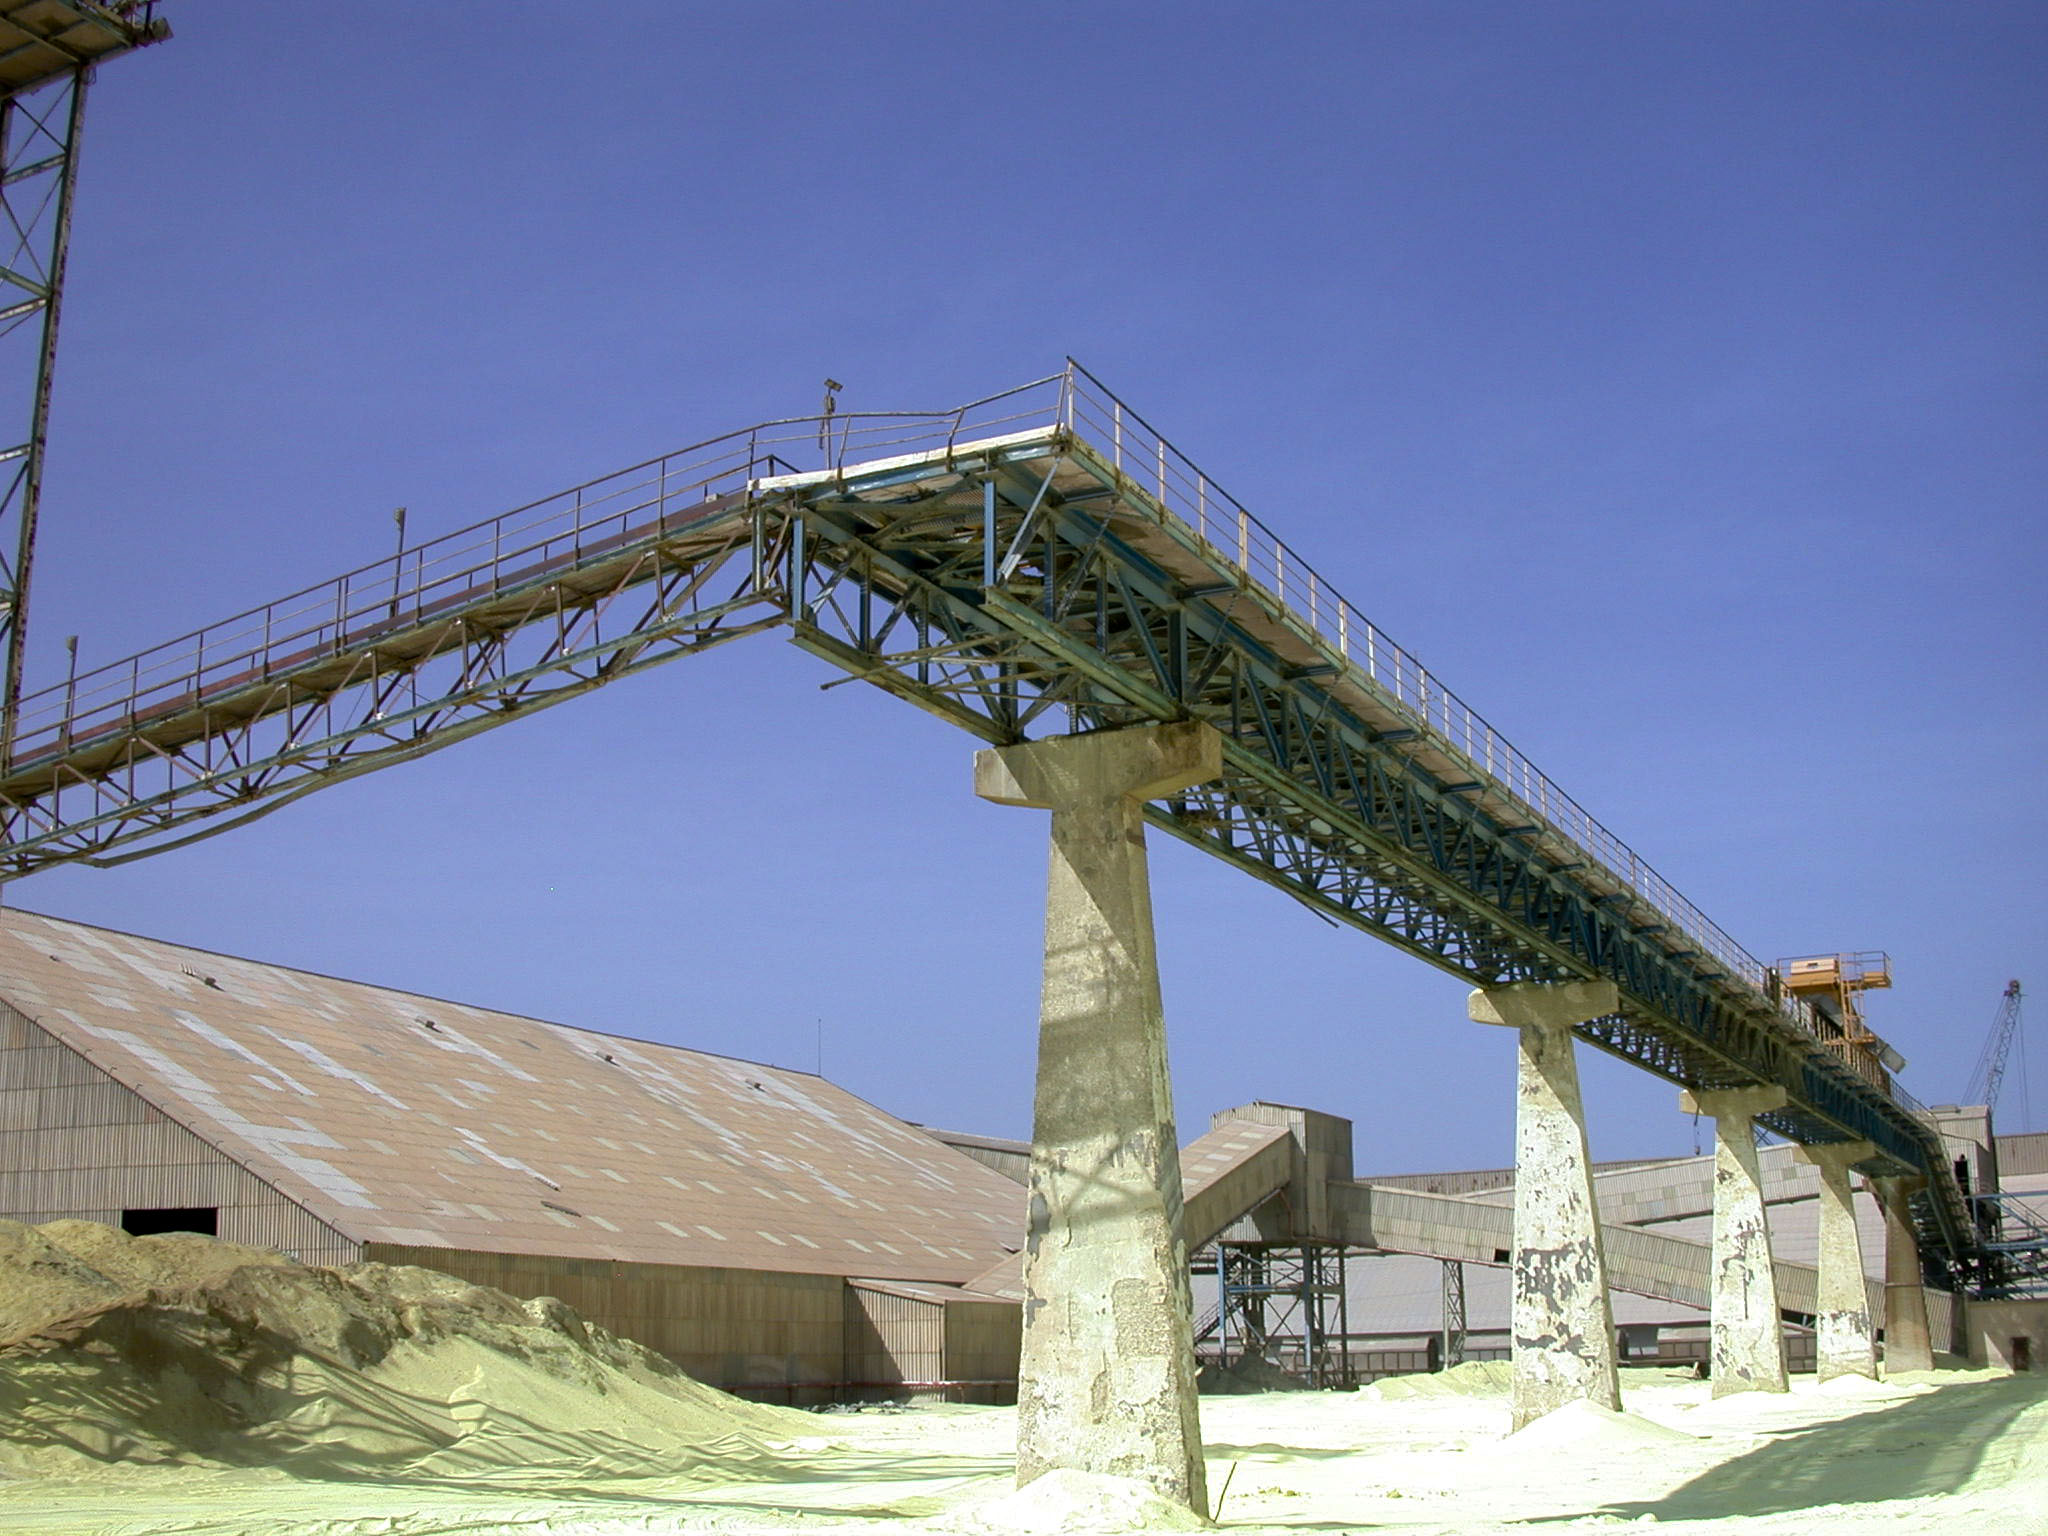 Figure_5_-_Foreground_outside_tripper_conveyor_background_metal_structure